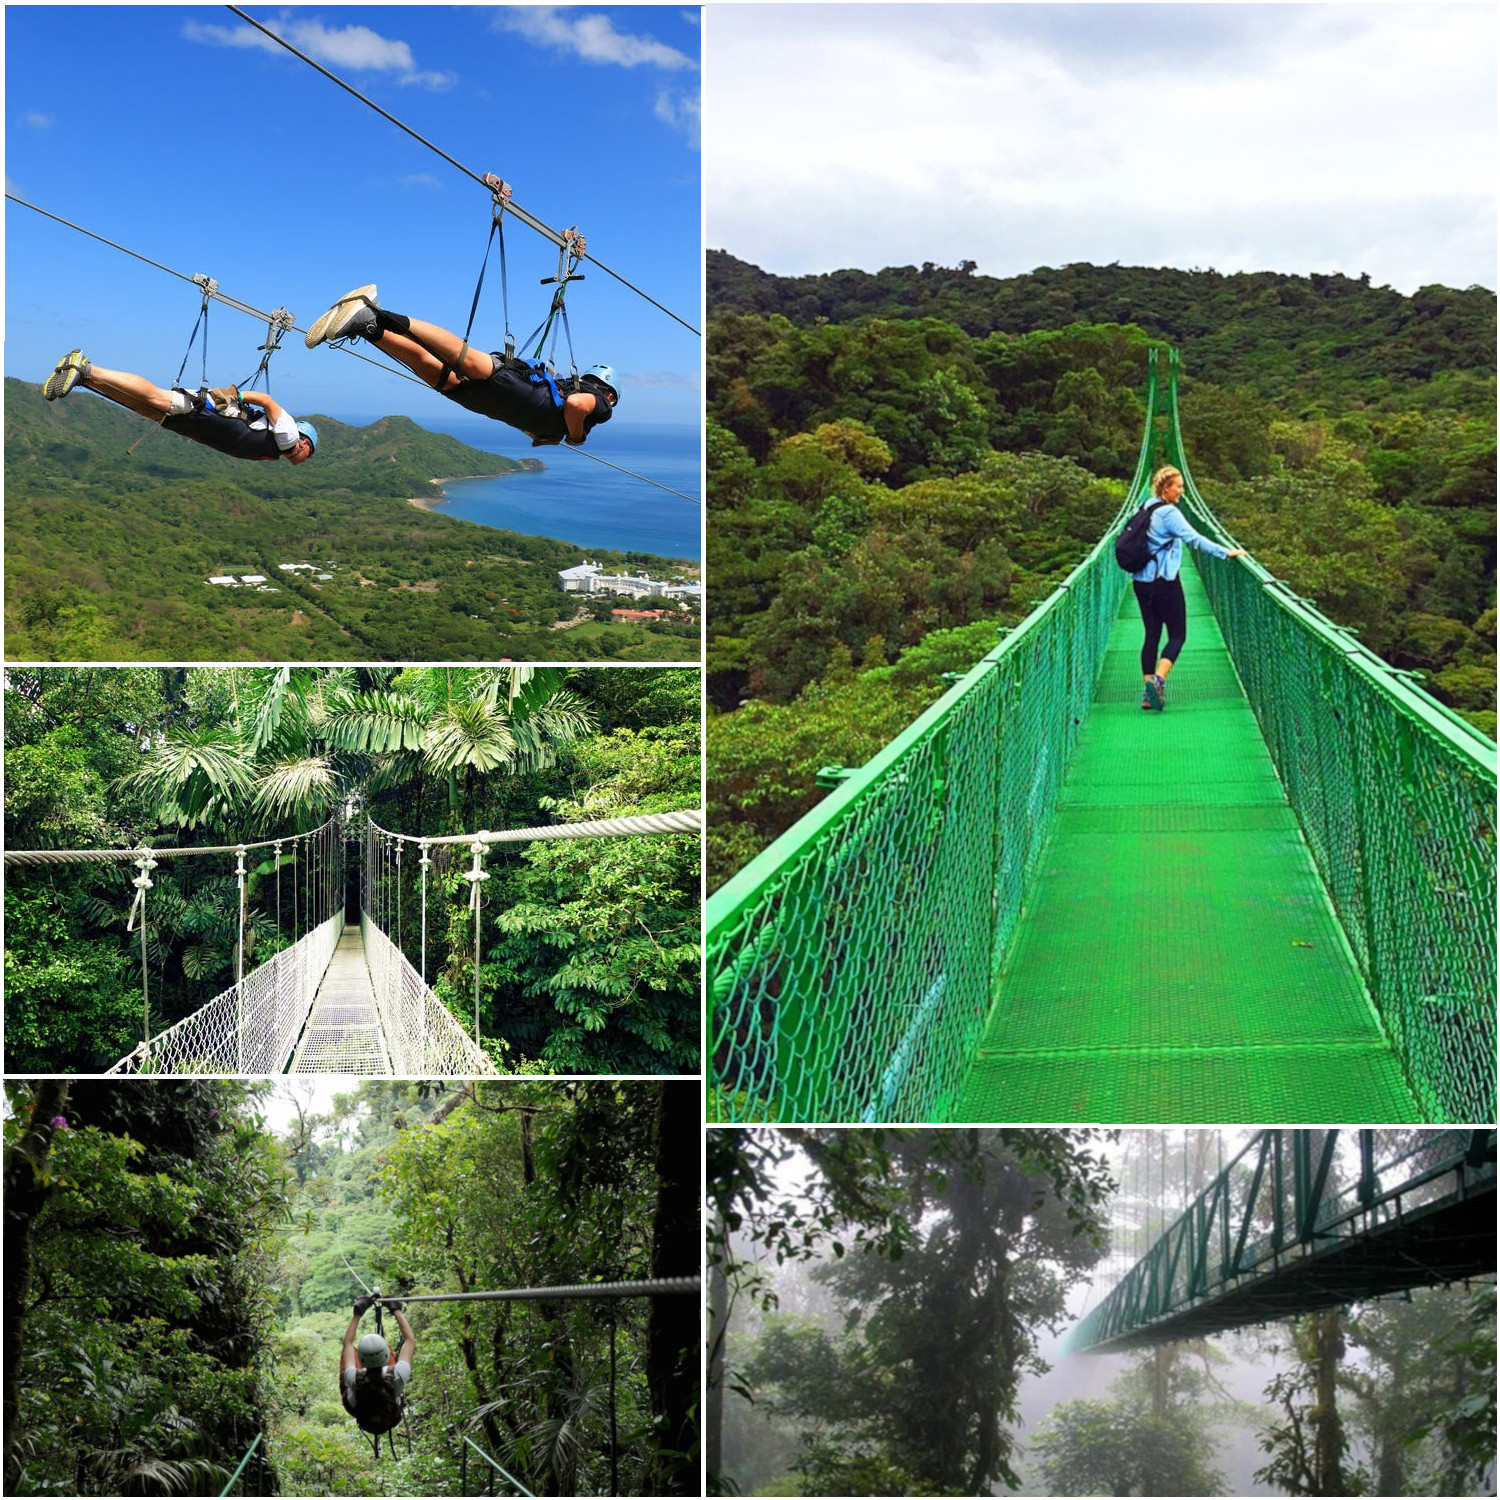 Zip Lining And Hanging Bridges